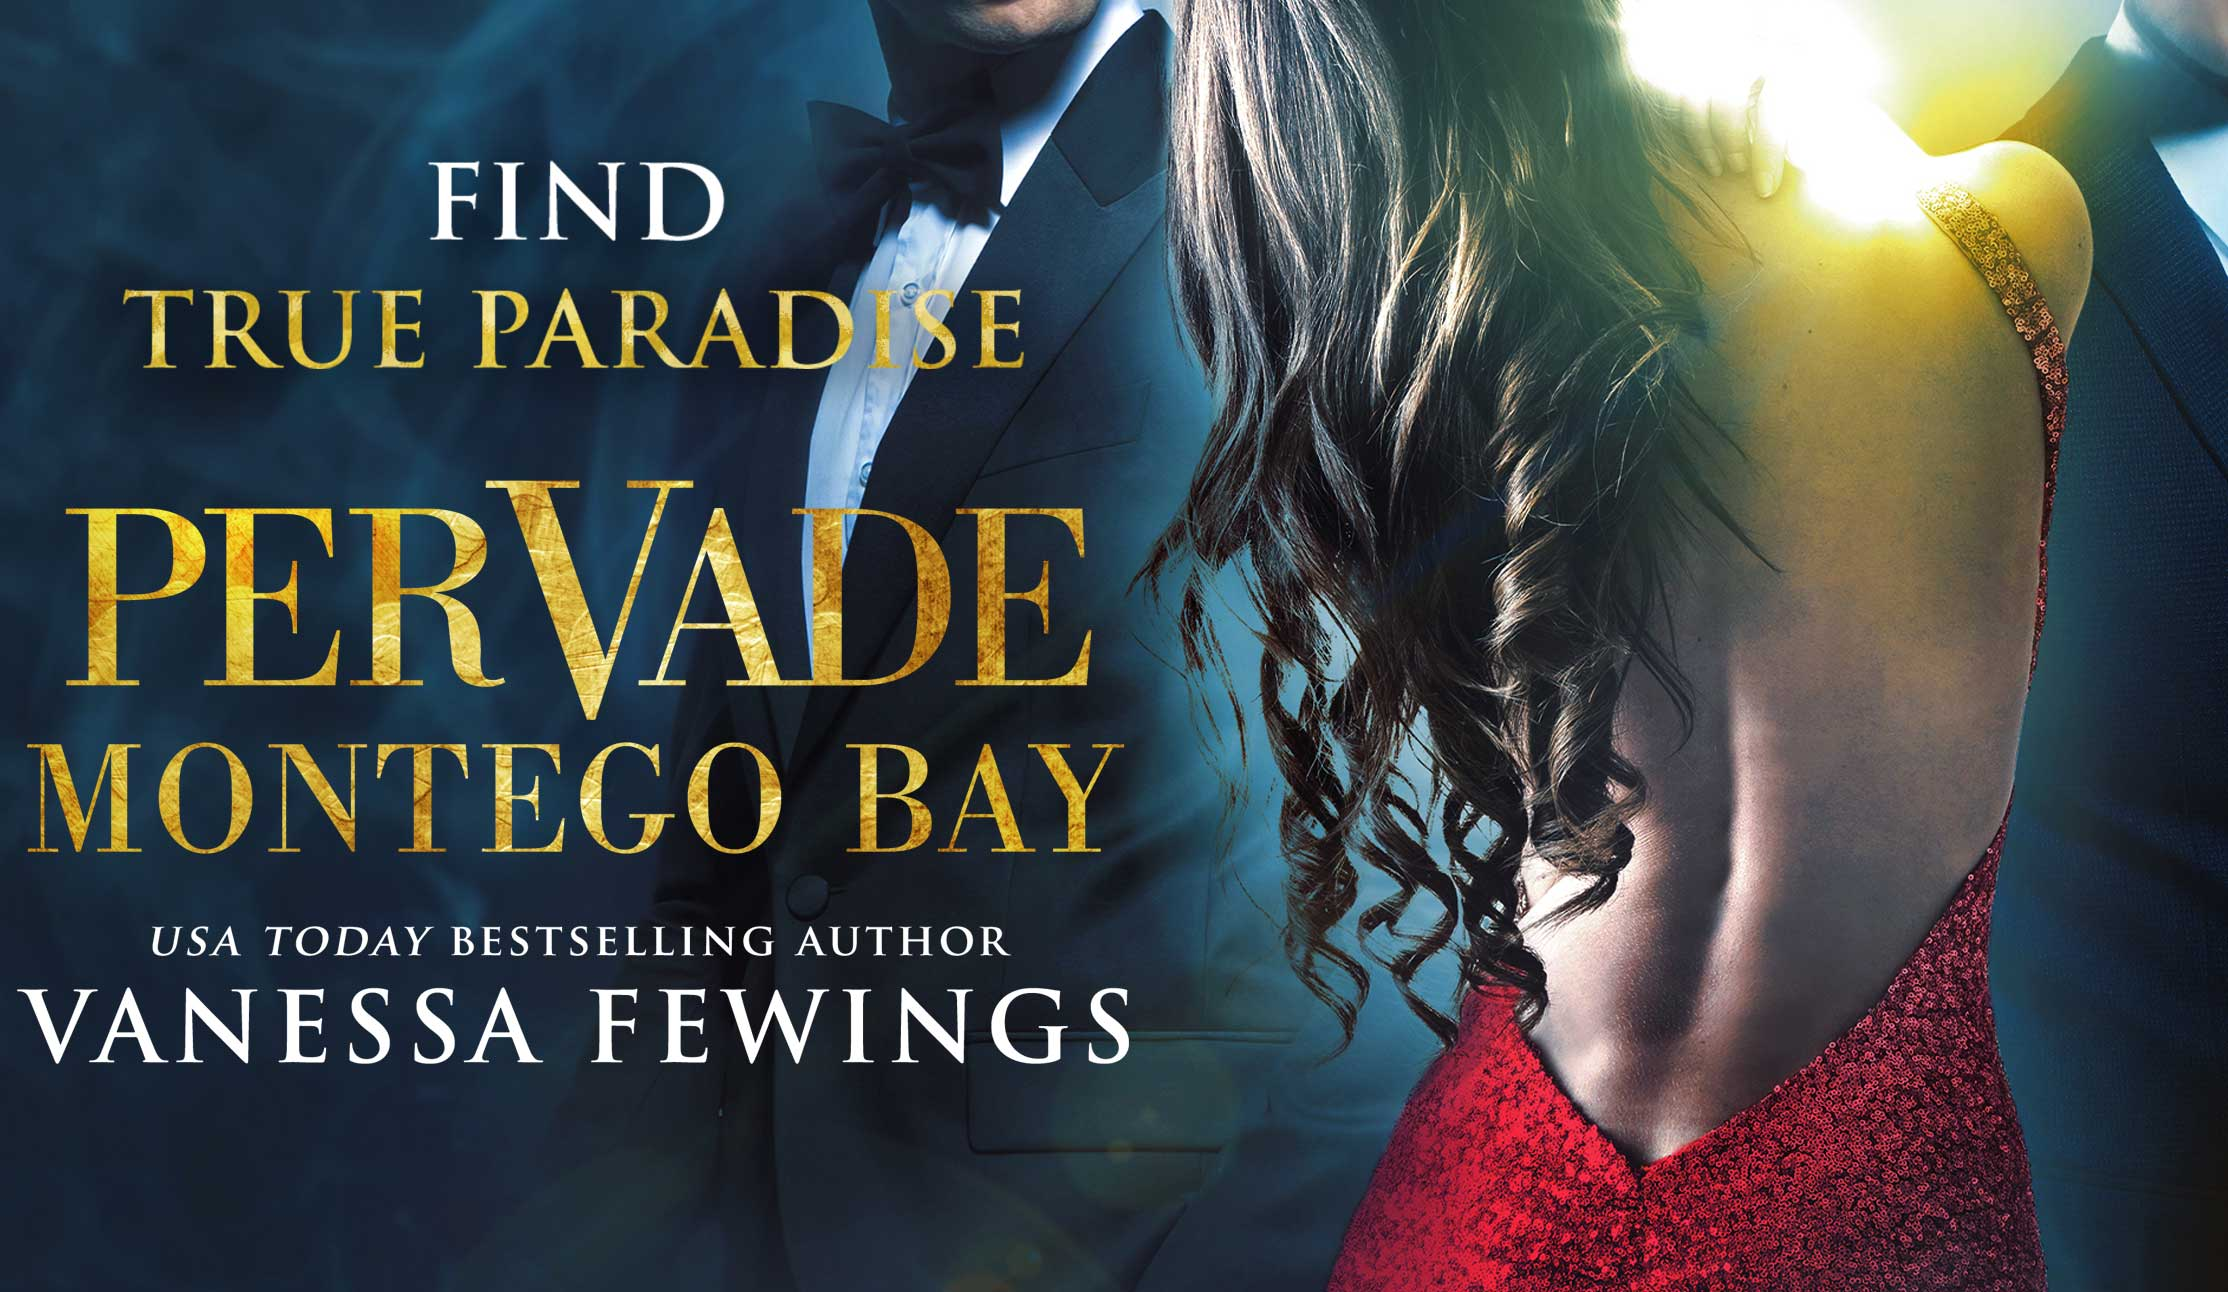 Pervade Montego Bay, Book Two in the Pervade Duet by Bestselling Romance Author Vanessa Fewings